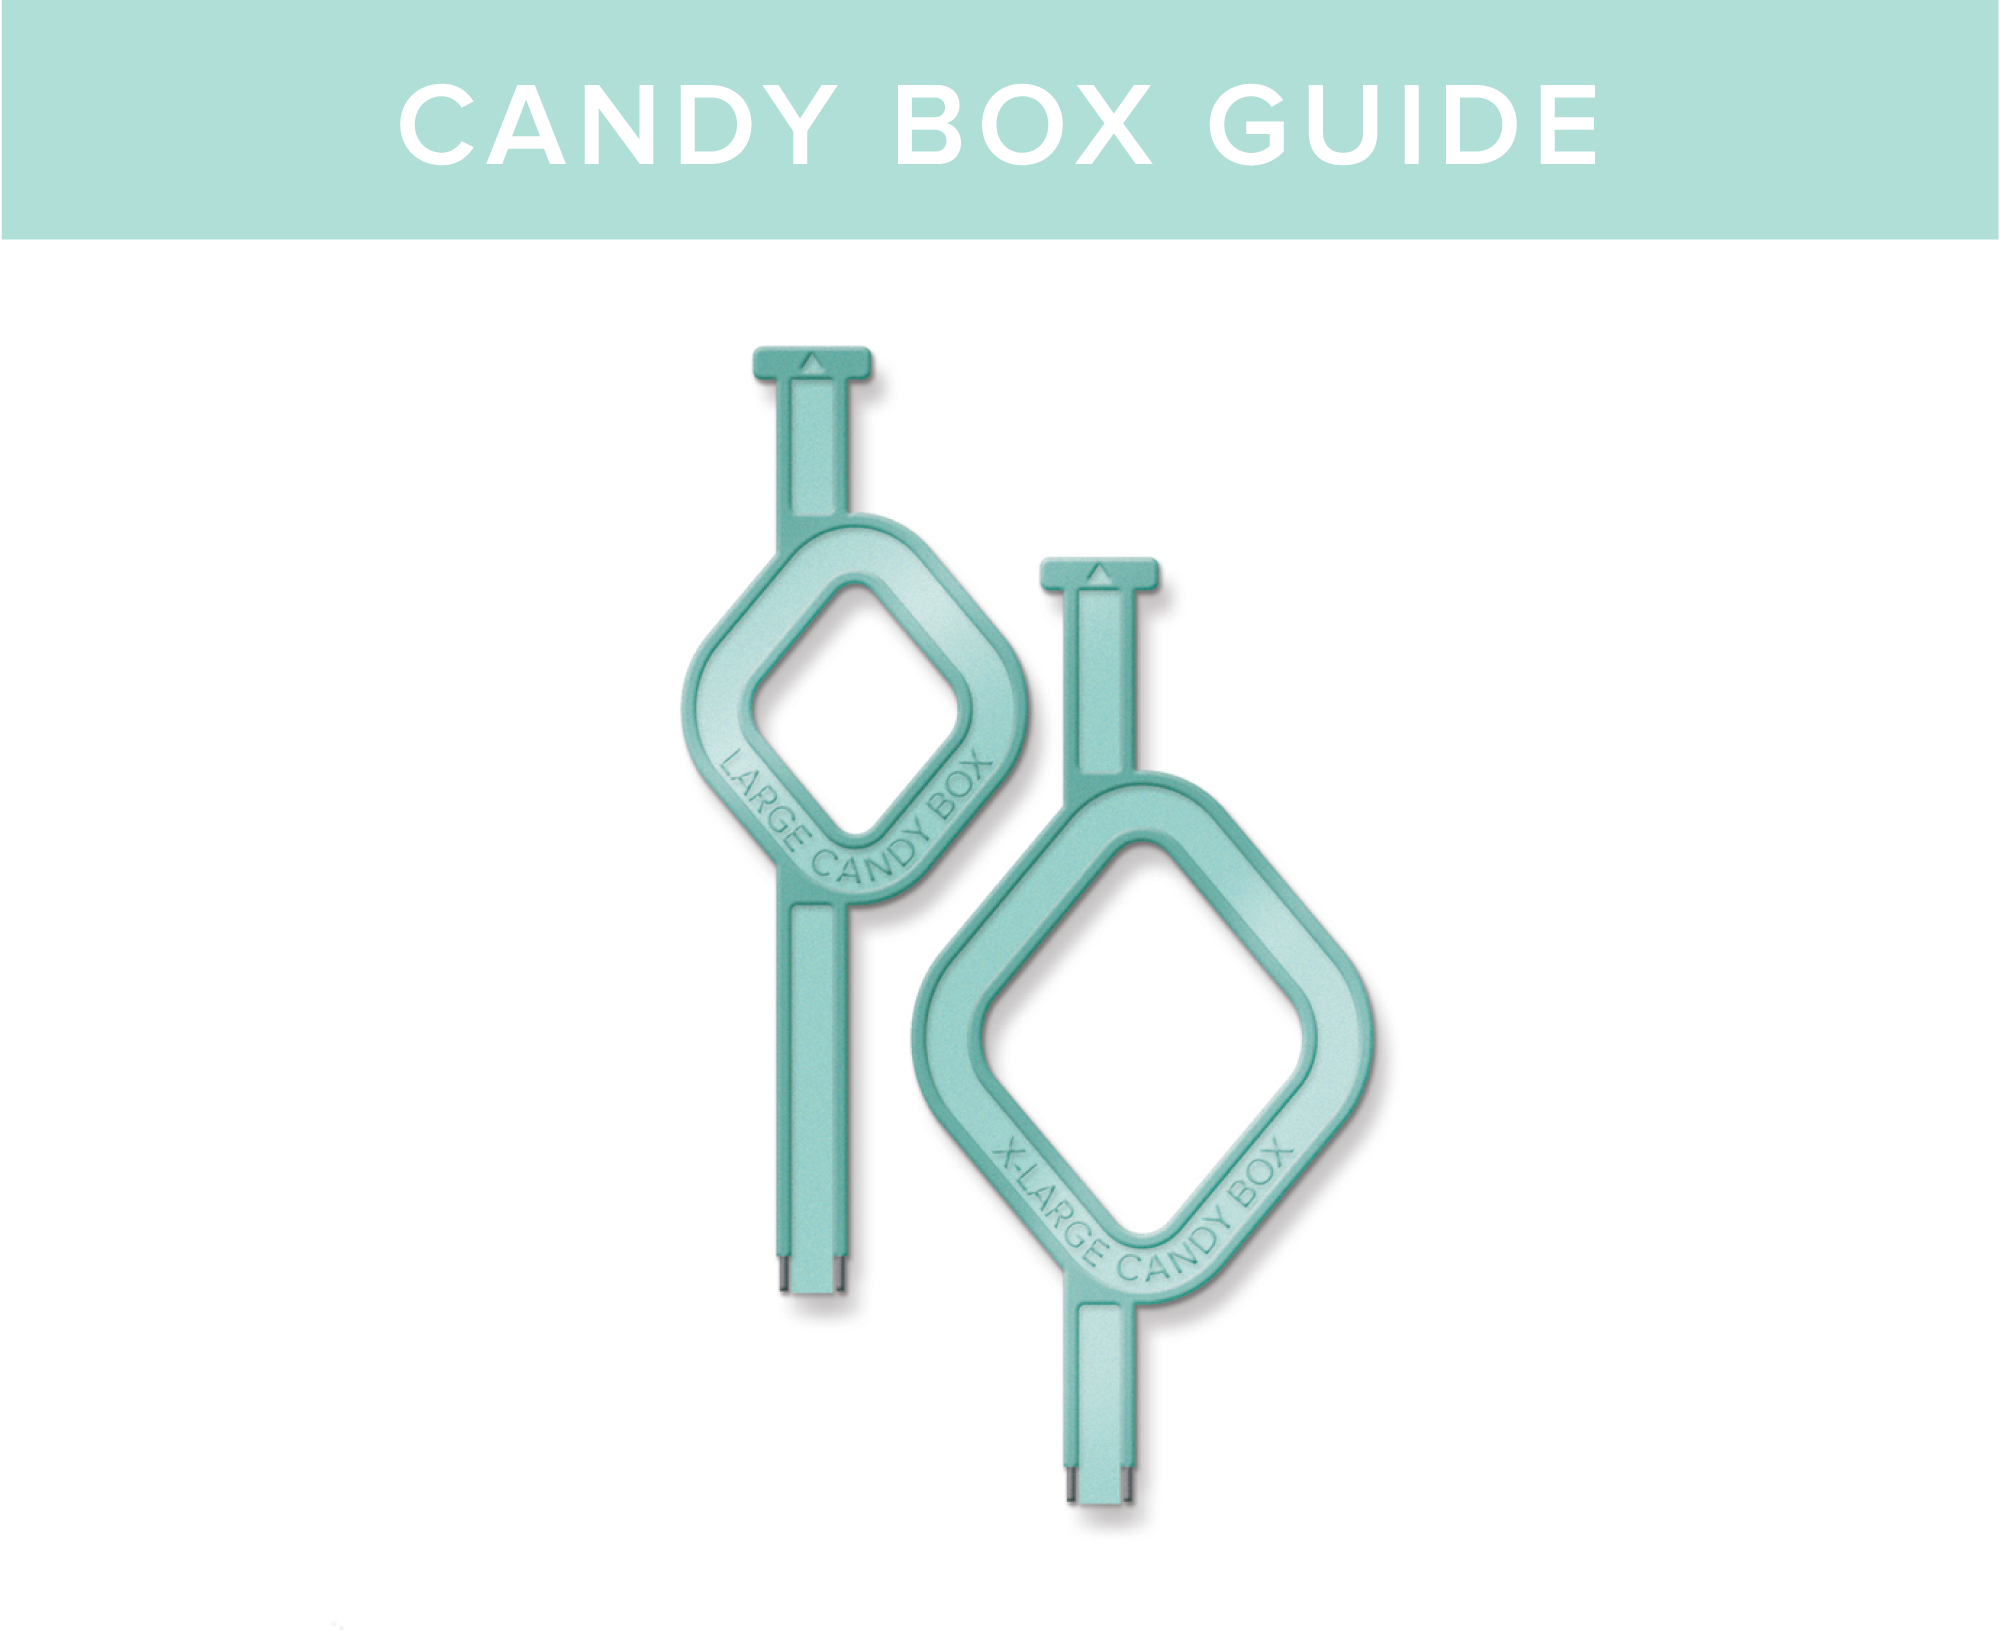 WR_CandyBoxGuide_Instructions_Links